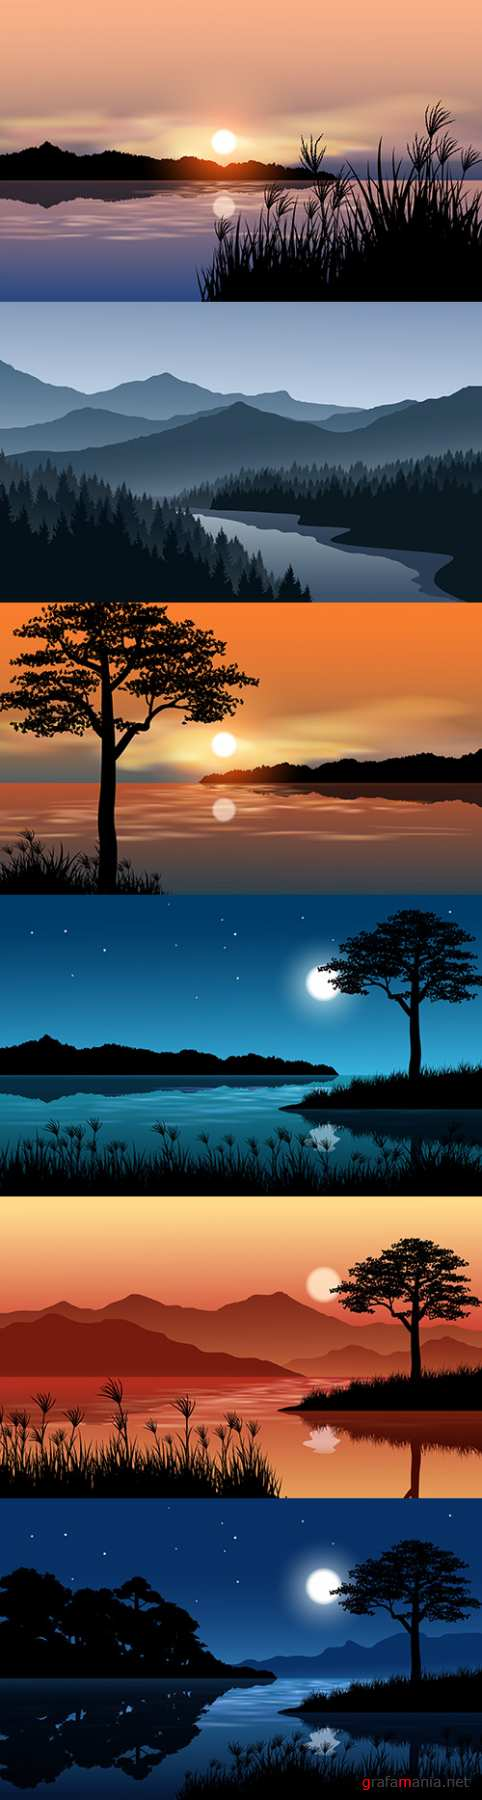 Night landscape at river and sunset illustration